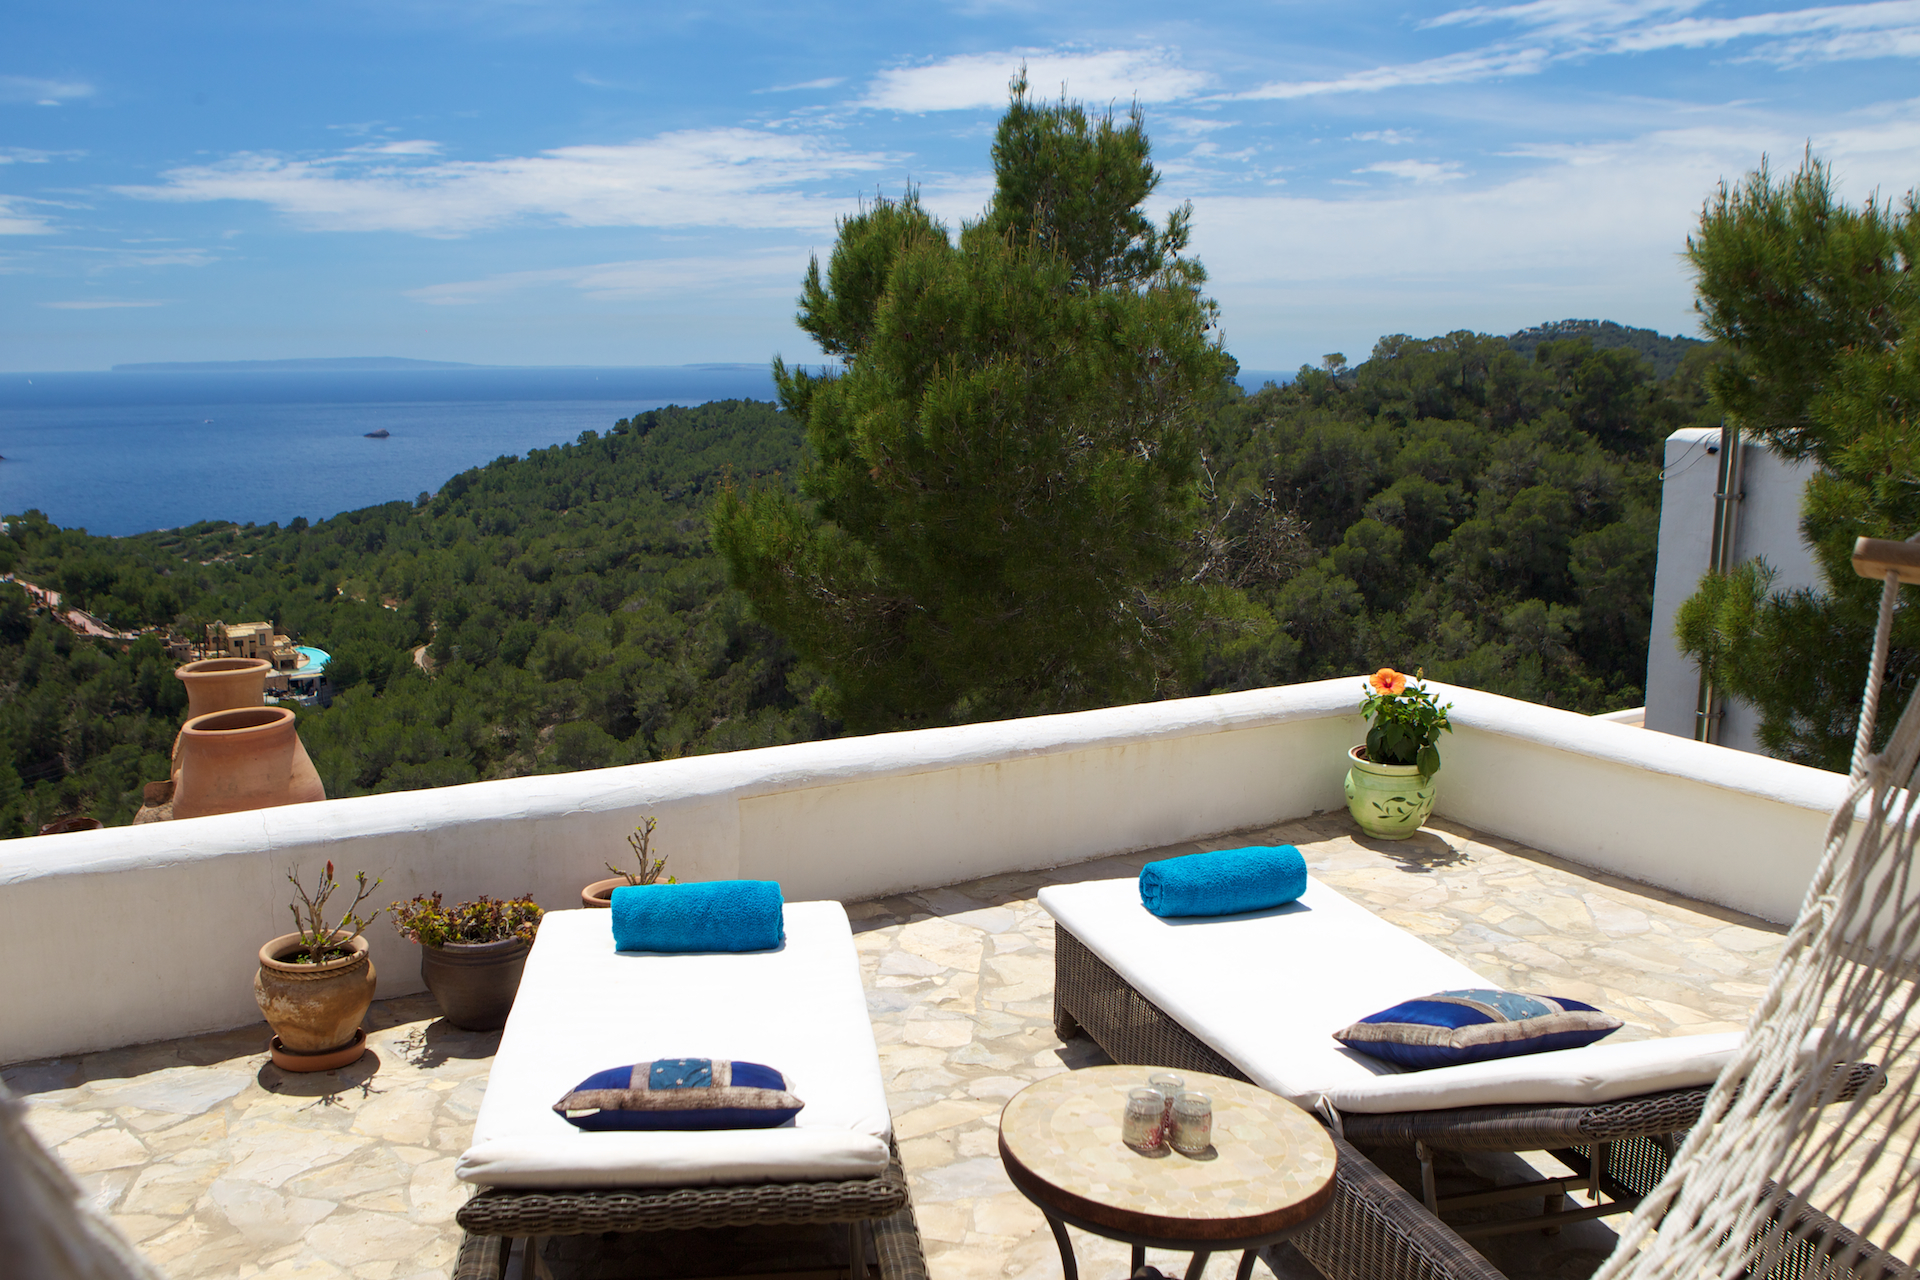 Elegant villa on the top of a hill with spectacular views over the nature reserve and the sea up to formentera